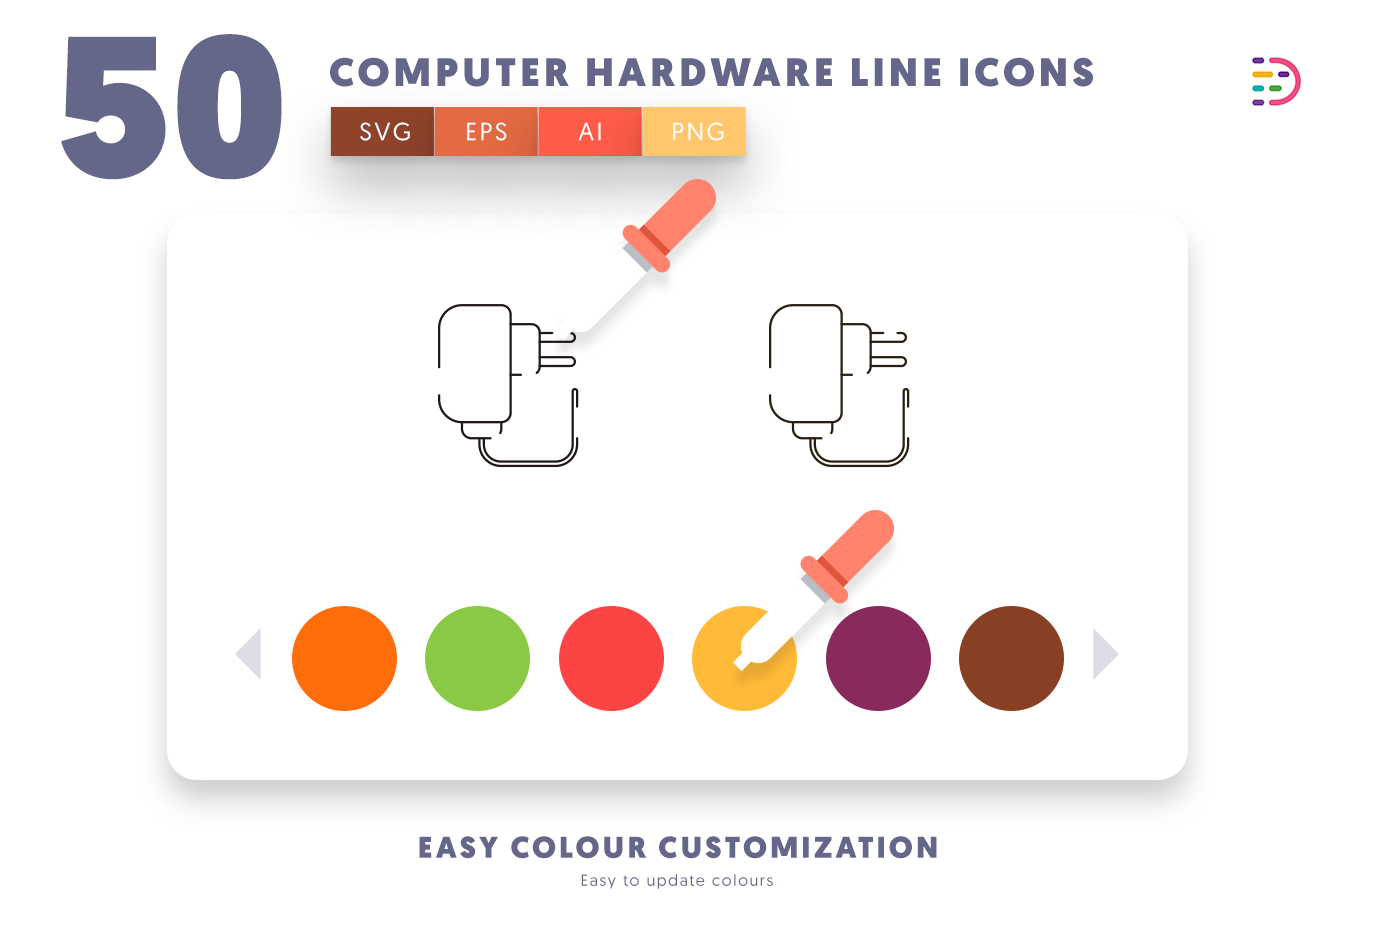 Customizable and vector 50 Computer Hardware Line Icons